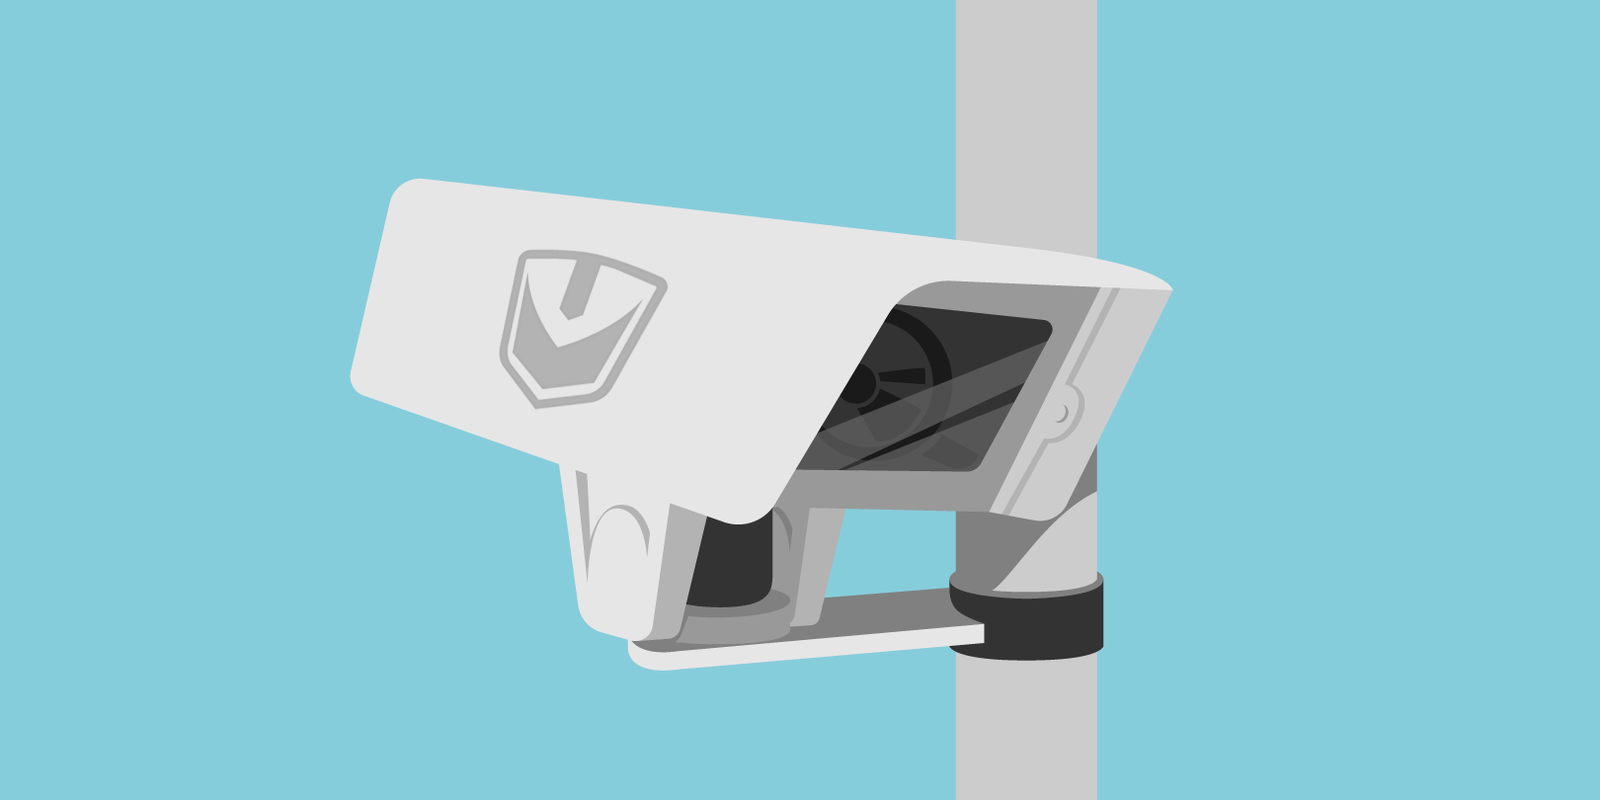 Audit Logging is like adding security cameras to the backend of your site.